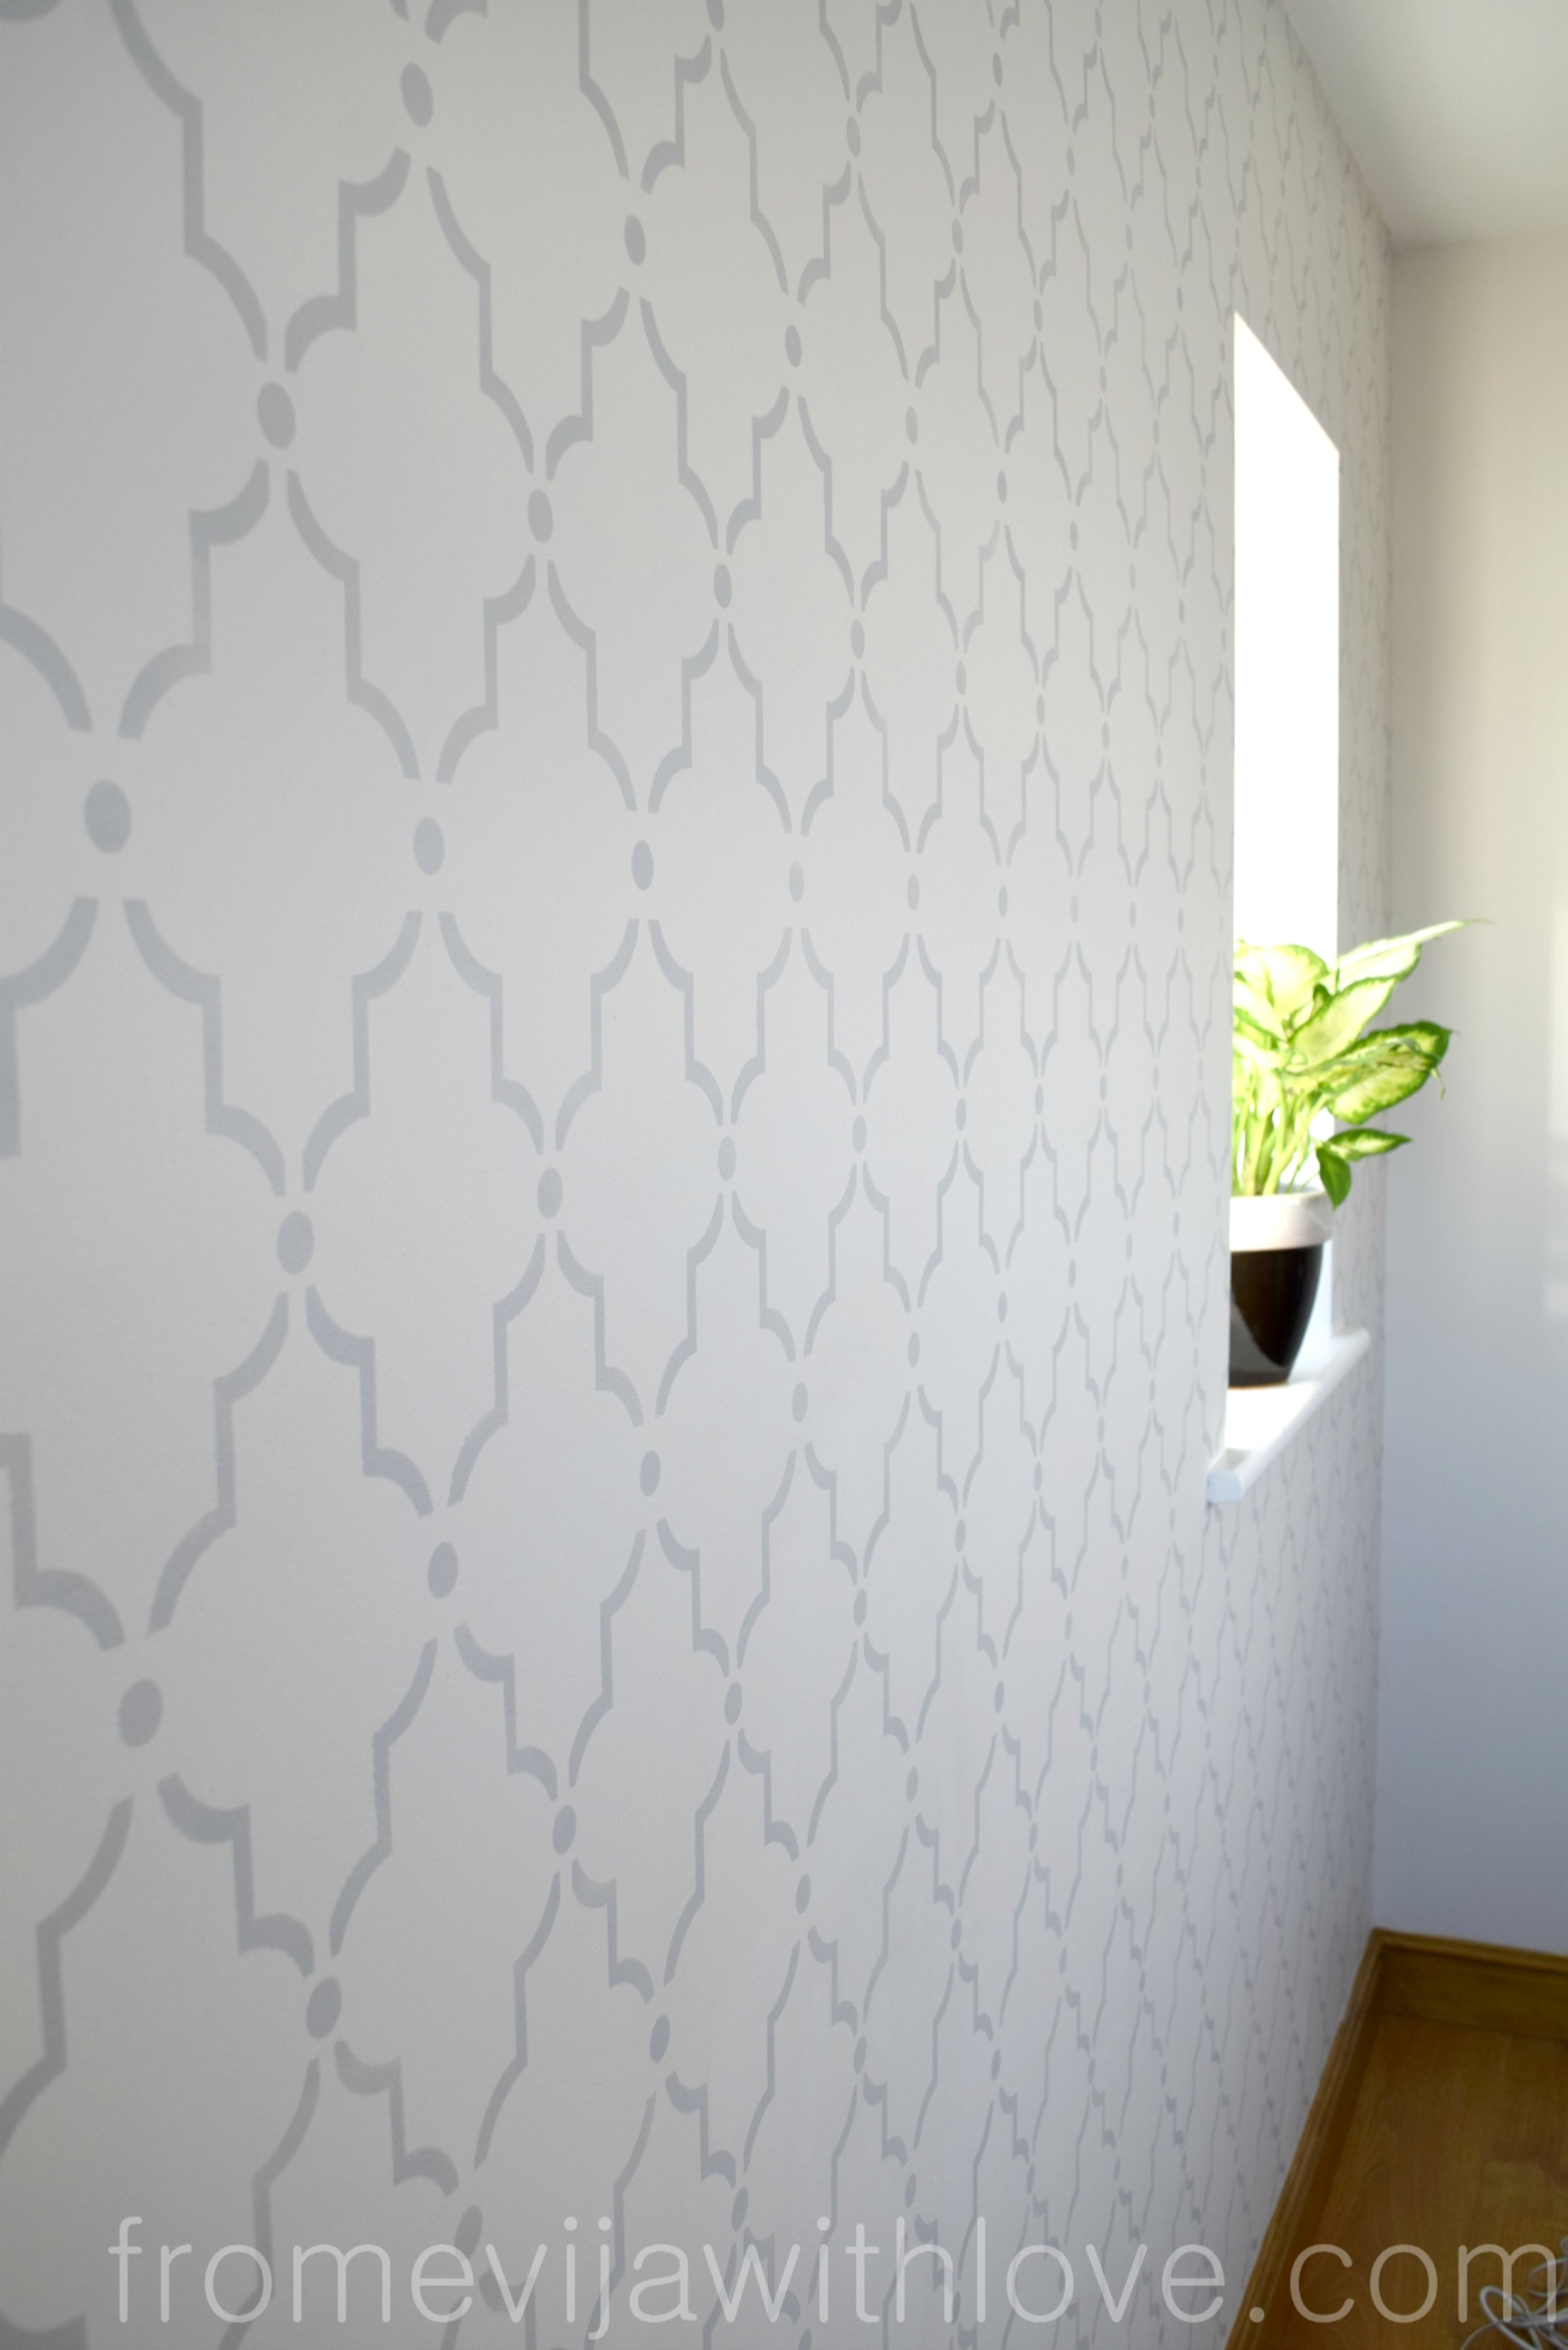 Stencil wall design choice image home wall decoration ideas how to stencil a wall beginners guide from evija with love what do you think amipublicfo amipublicfo Gallery